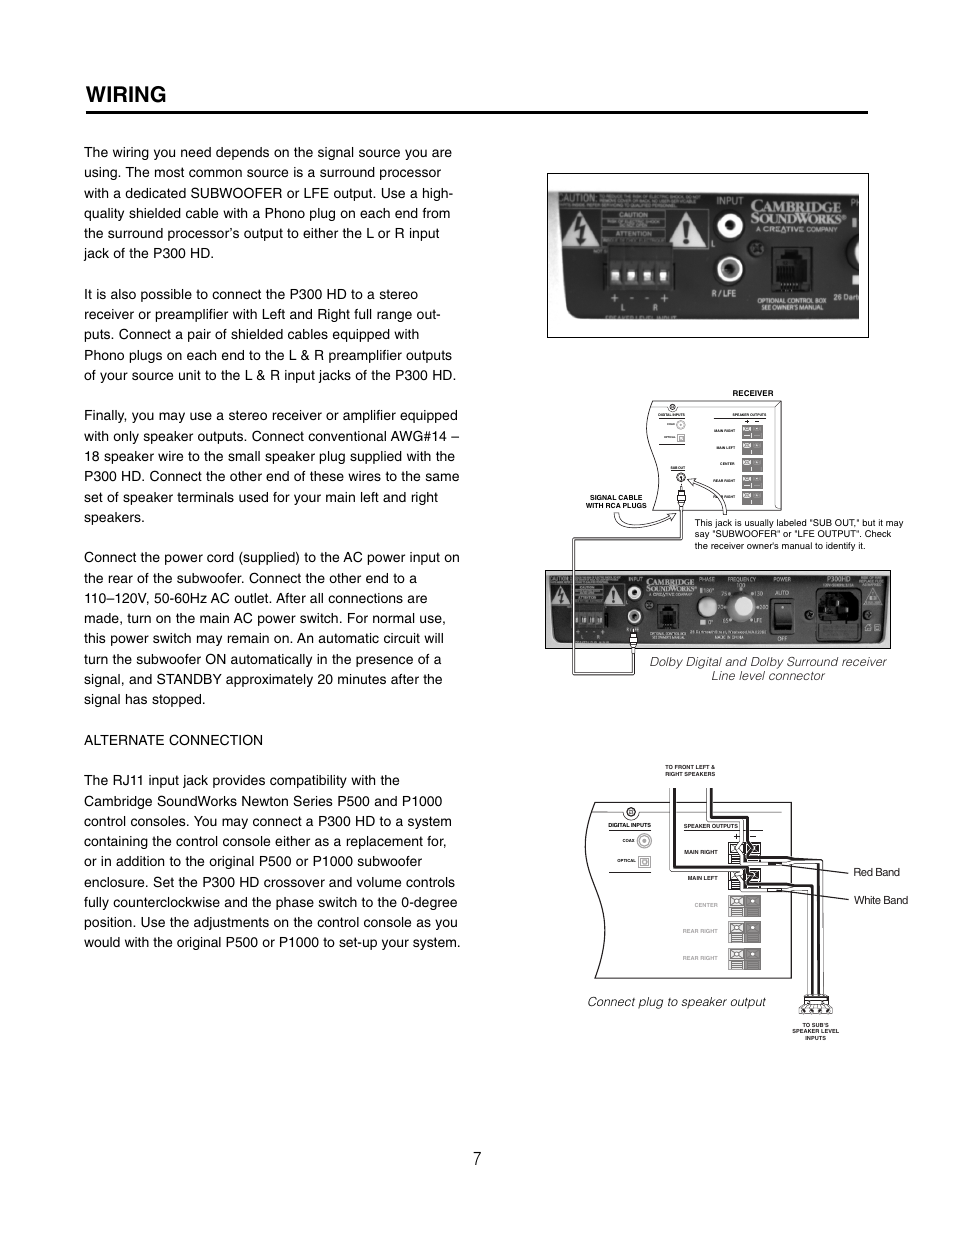 Wiring | Cambridge SoundWorks HD P300HD High Definition Powered Subwoofer  User Manual | Page 7 /